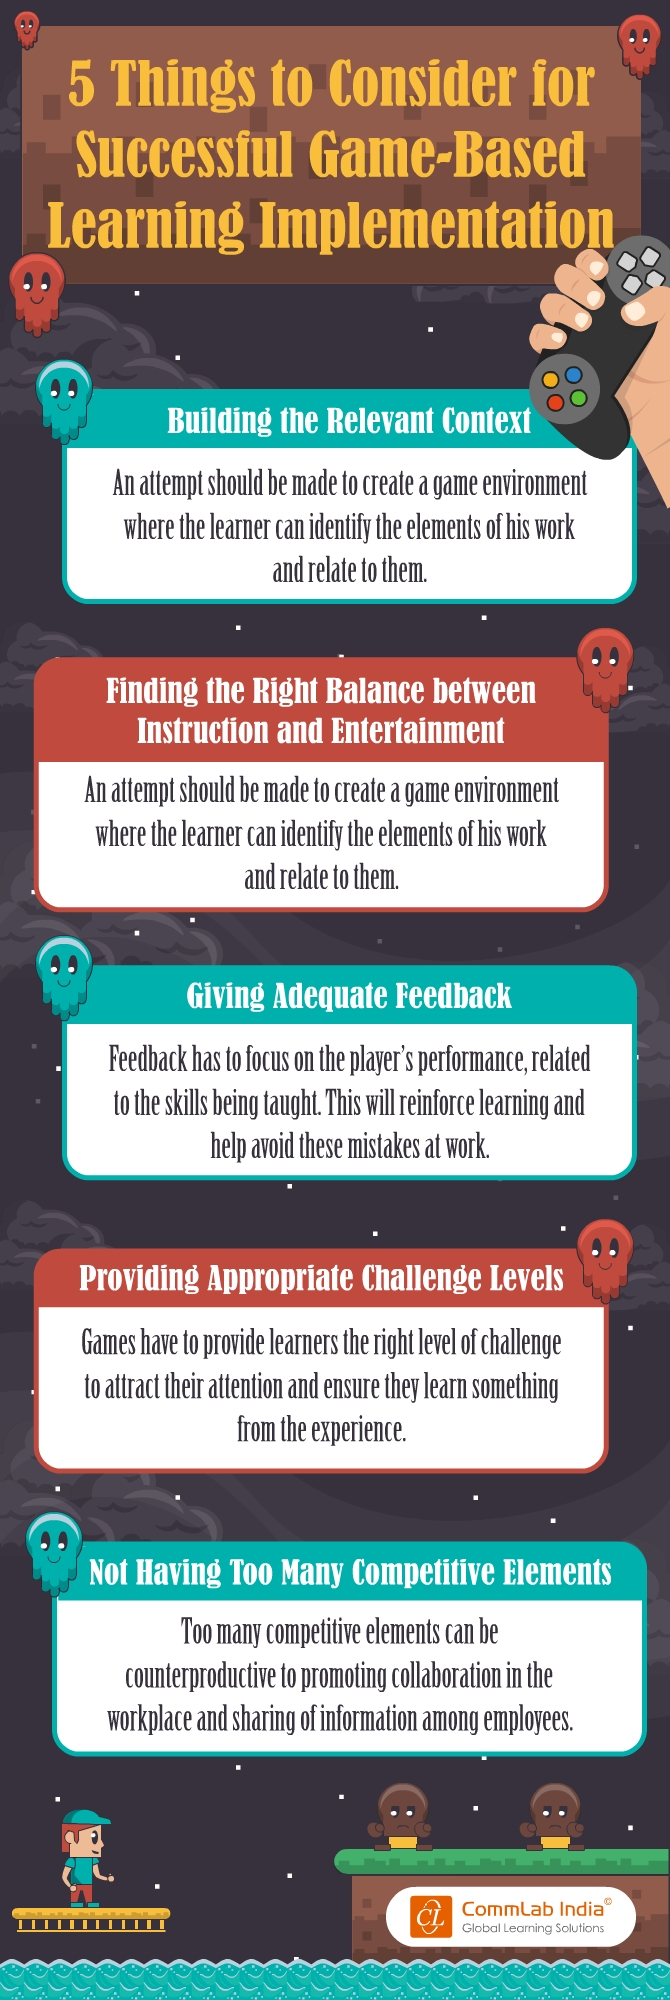 5 Things to Consider for Successful Game-based Learning Implementation [Infographic]